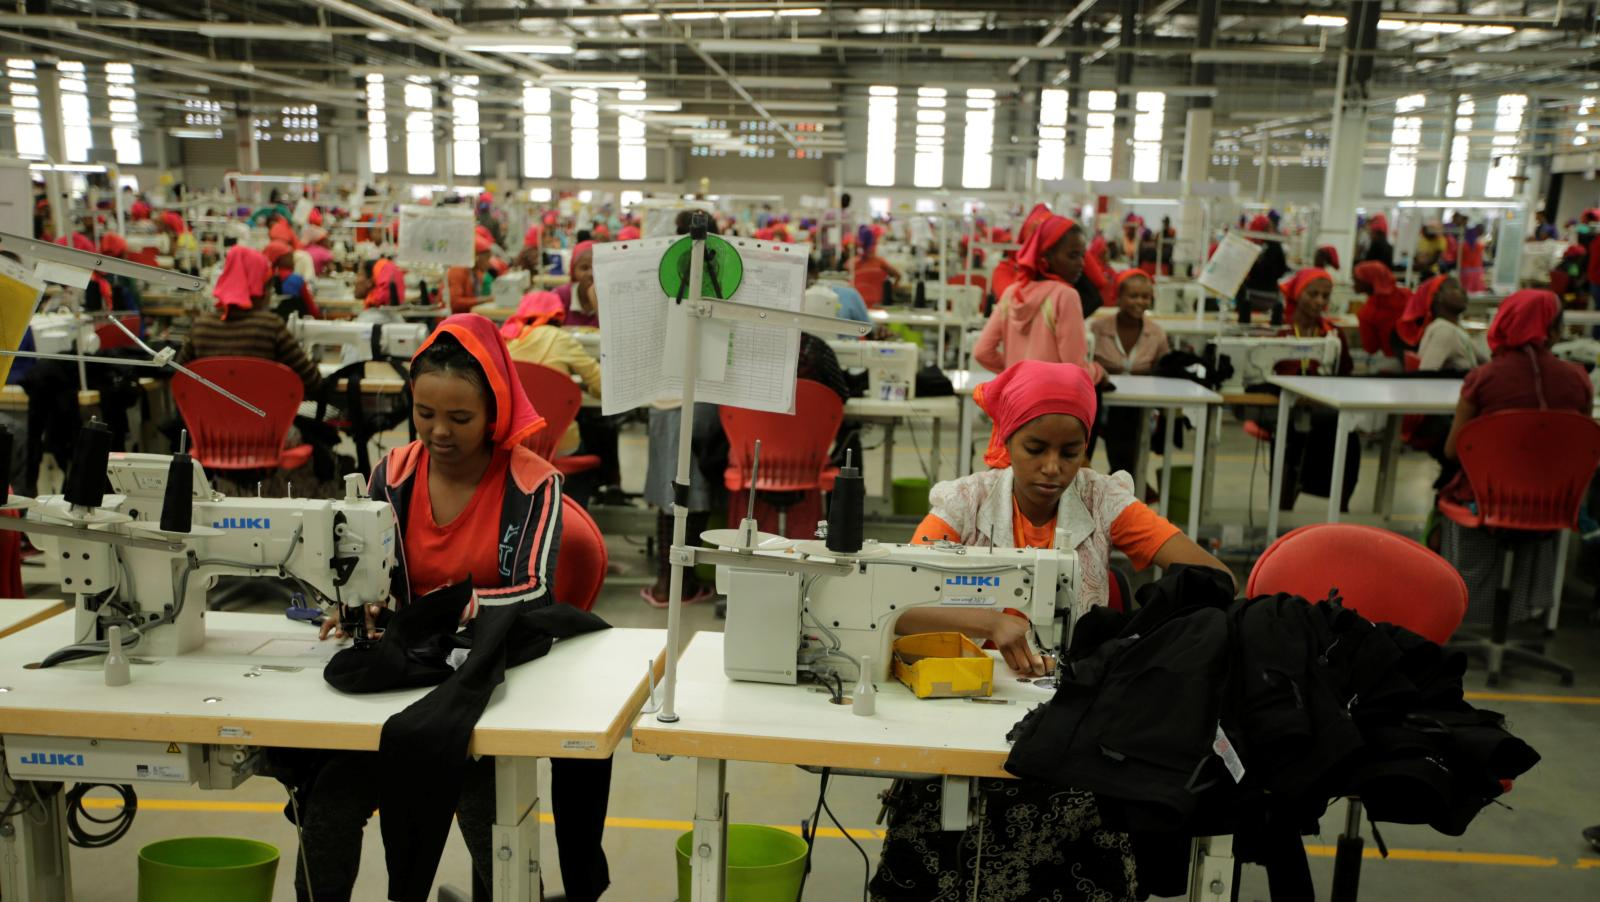 The lowest paid textile employees in the world